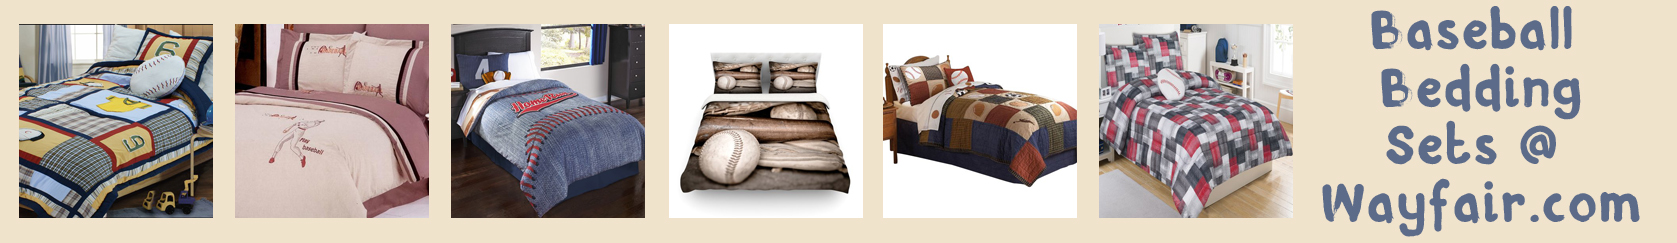 wayfair baseball bedding banner thin orange